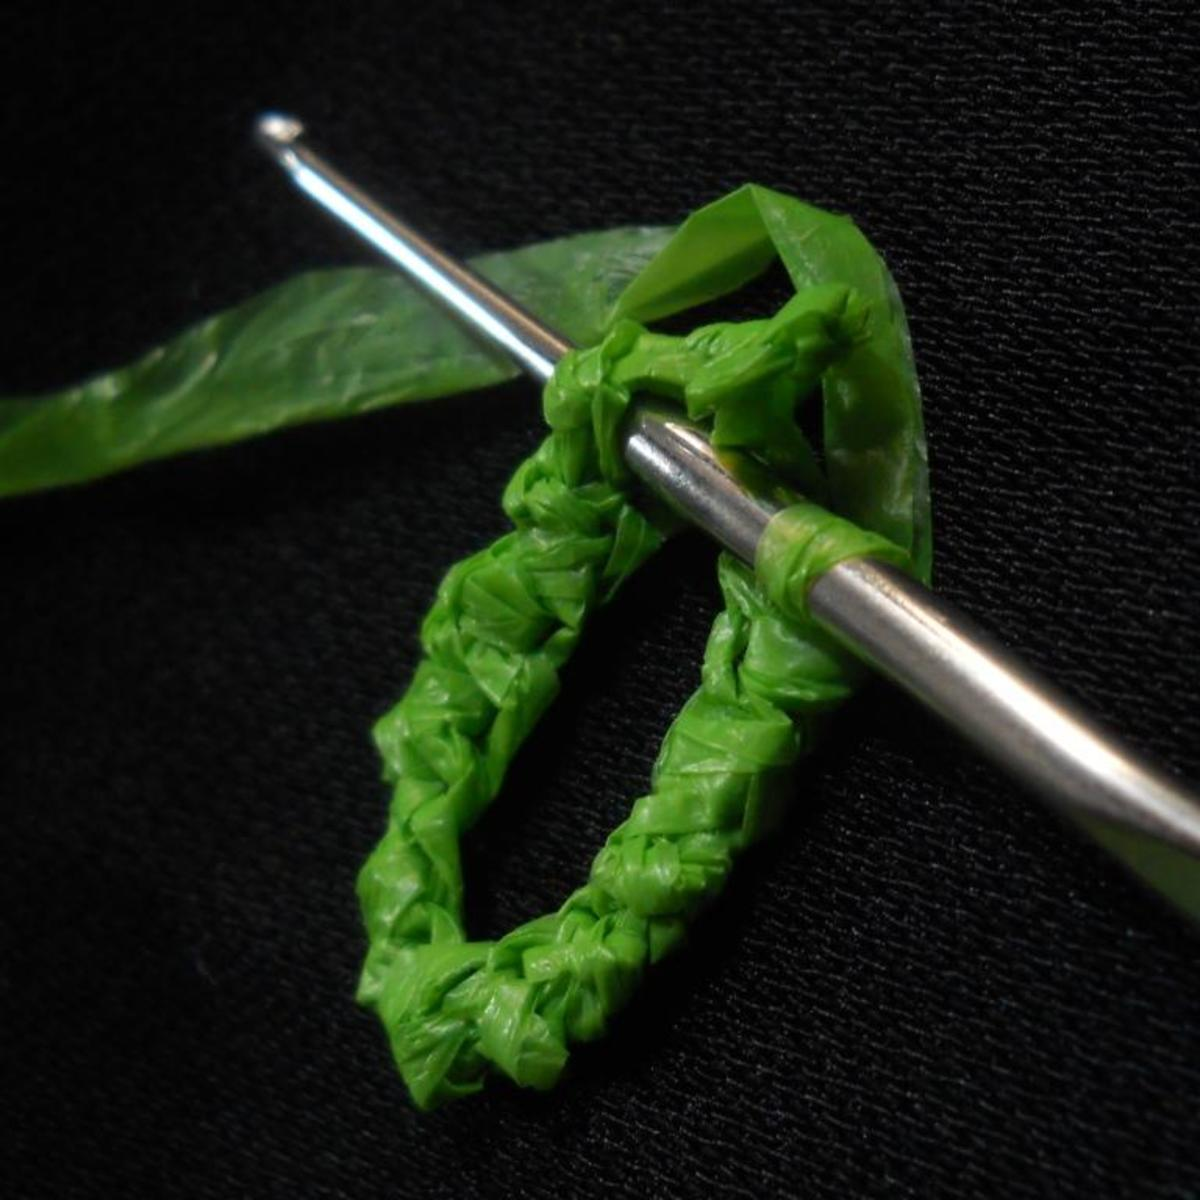 TWIST the remaining chains, sl st the last rsc to the first rsc. NOTE the position of the hook, the motif in progress and the yarn.